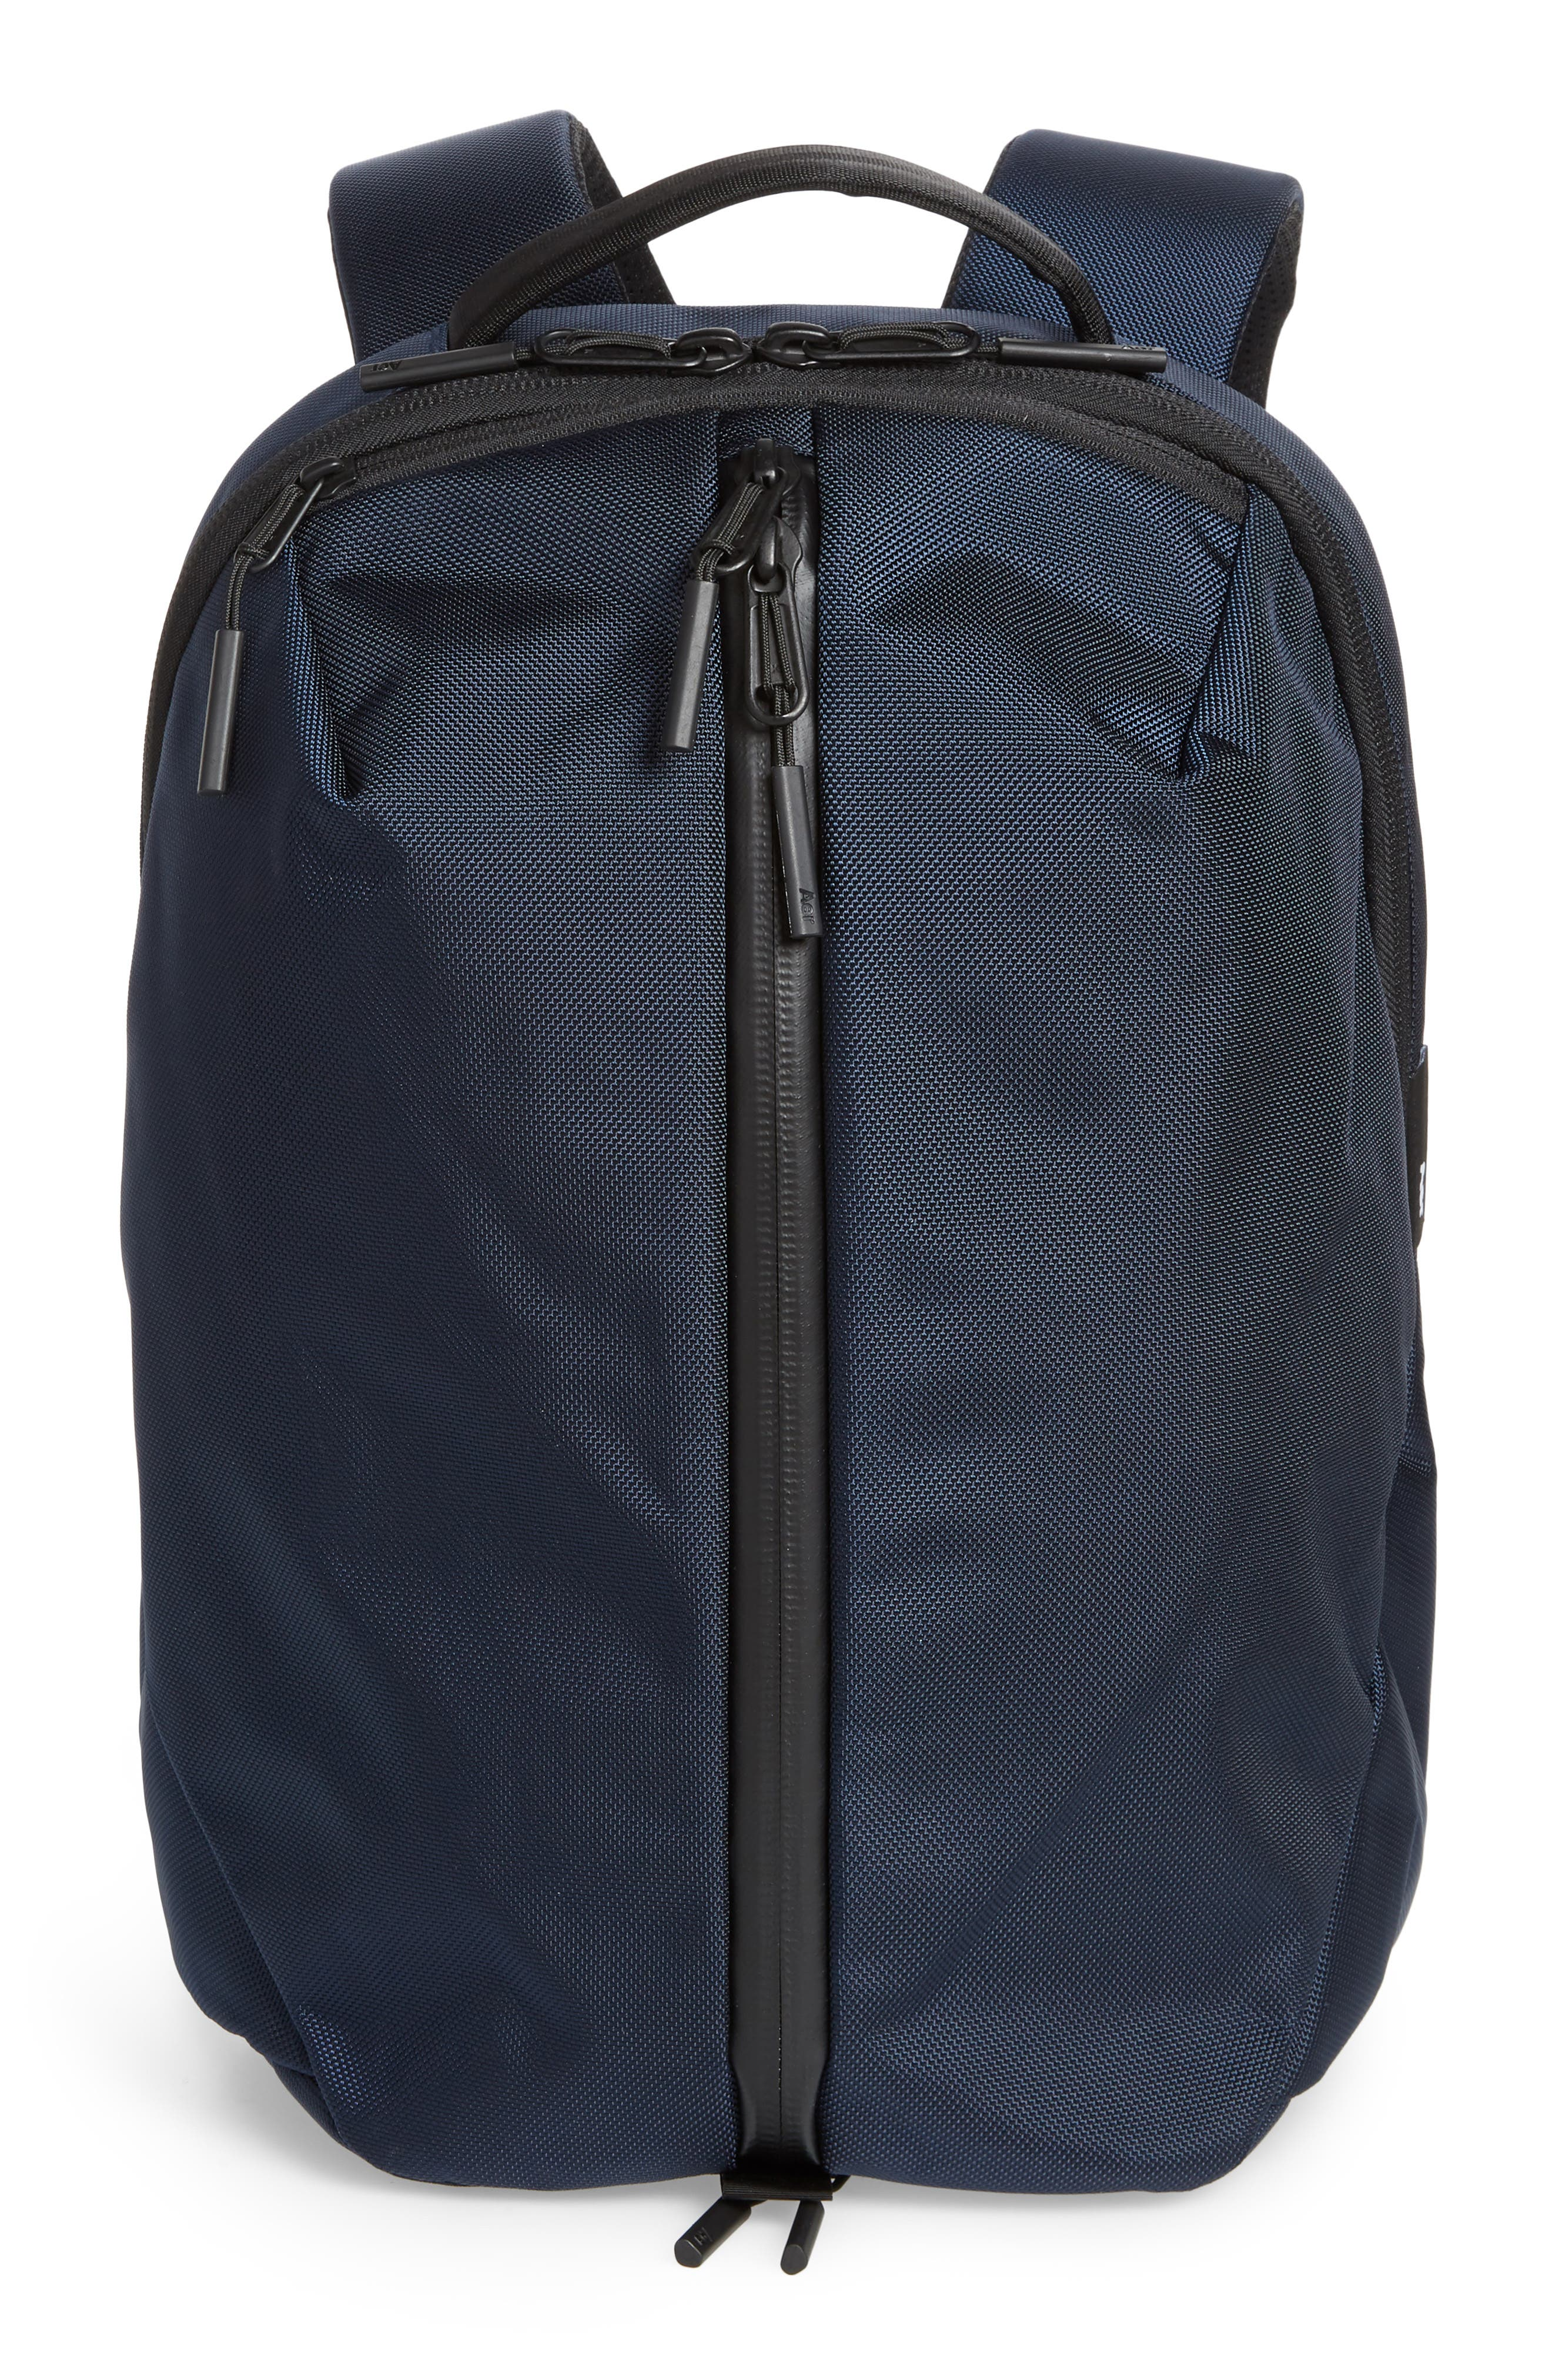 Fit Pack 2 Backpack,                             Main thumbnail 1, color,                             Navy